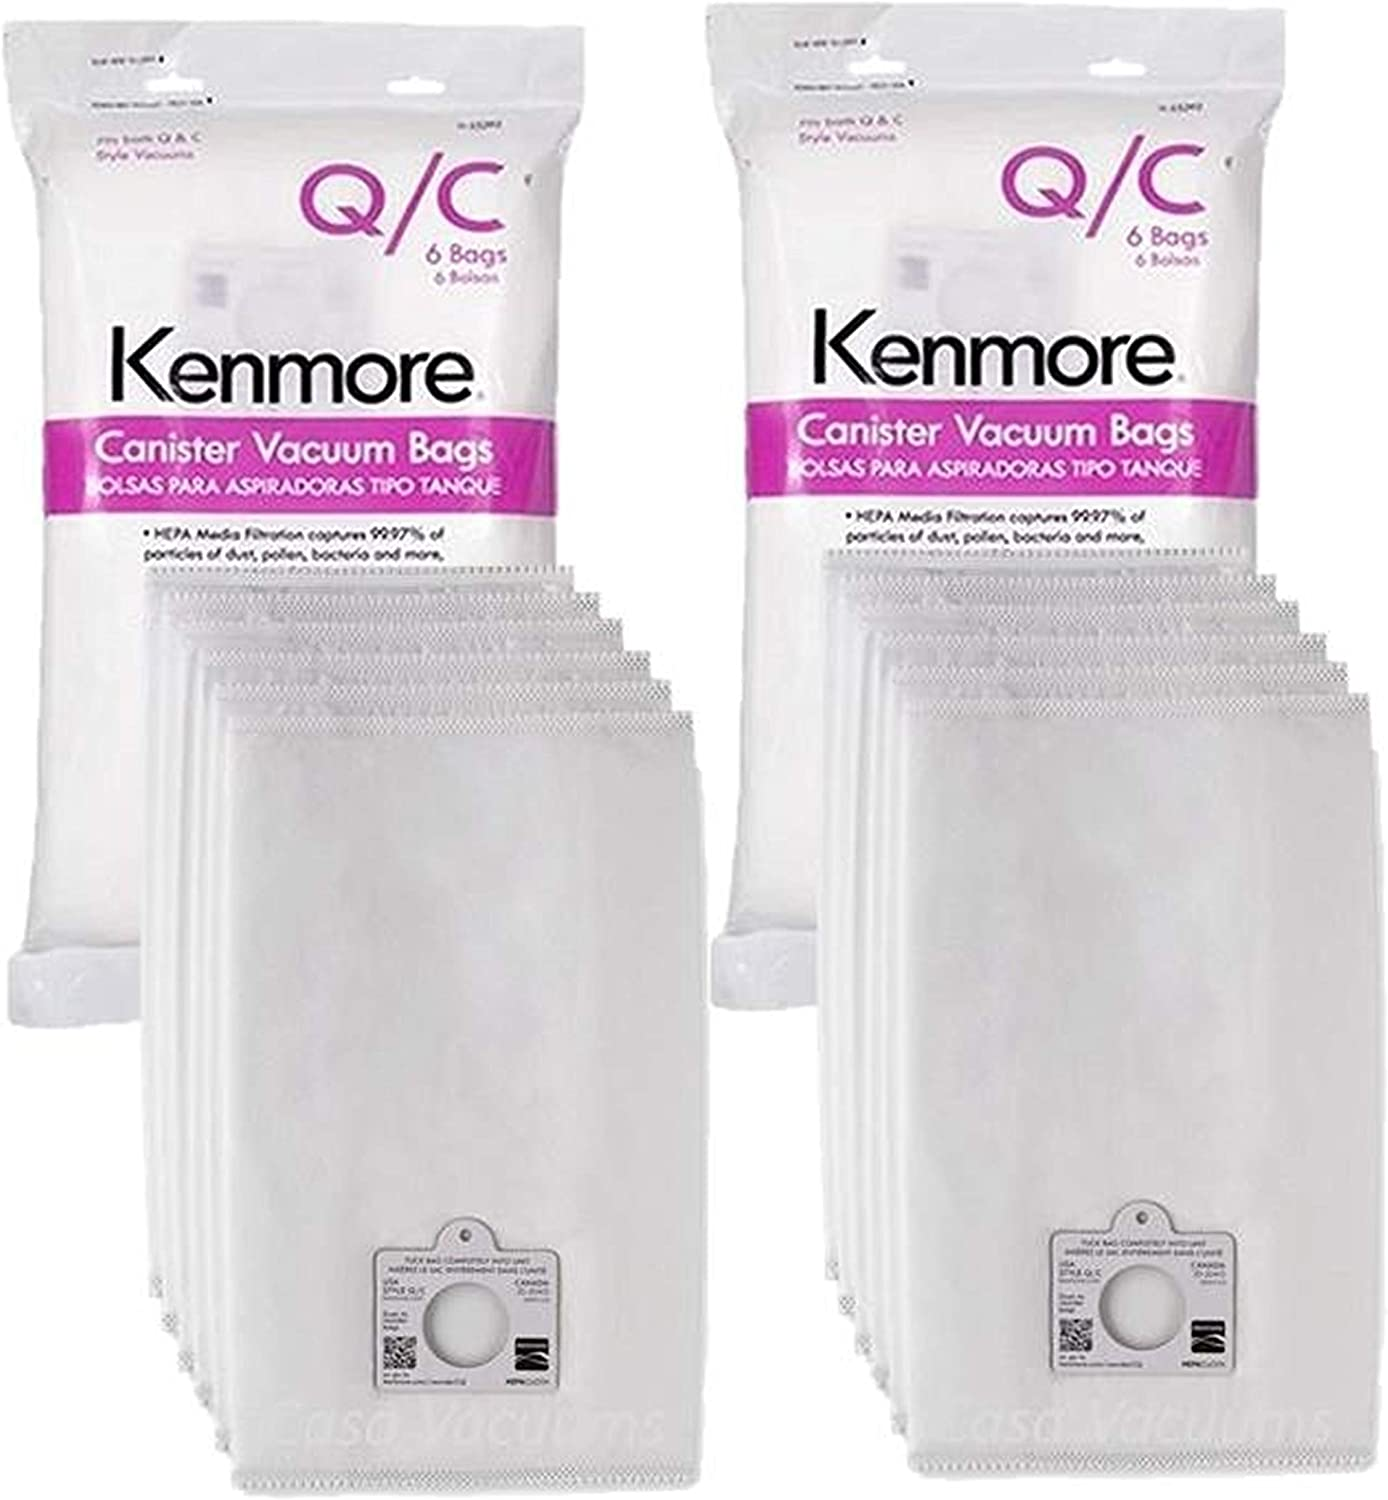 5055 50557 and 50558 Panasonic Type C-5 Models 15 Pack EnviroCare Replacement Micro Filtration Vacuum Bags to fit Kenmore Canister Type C//Q